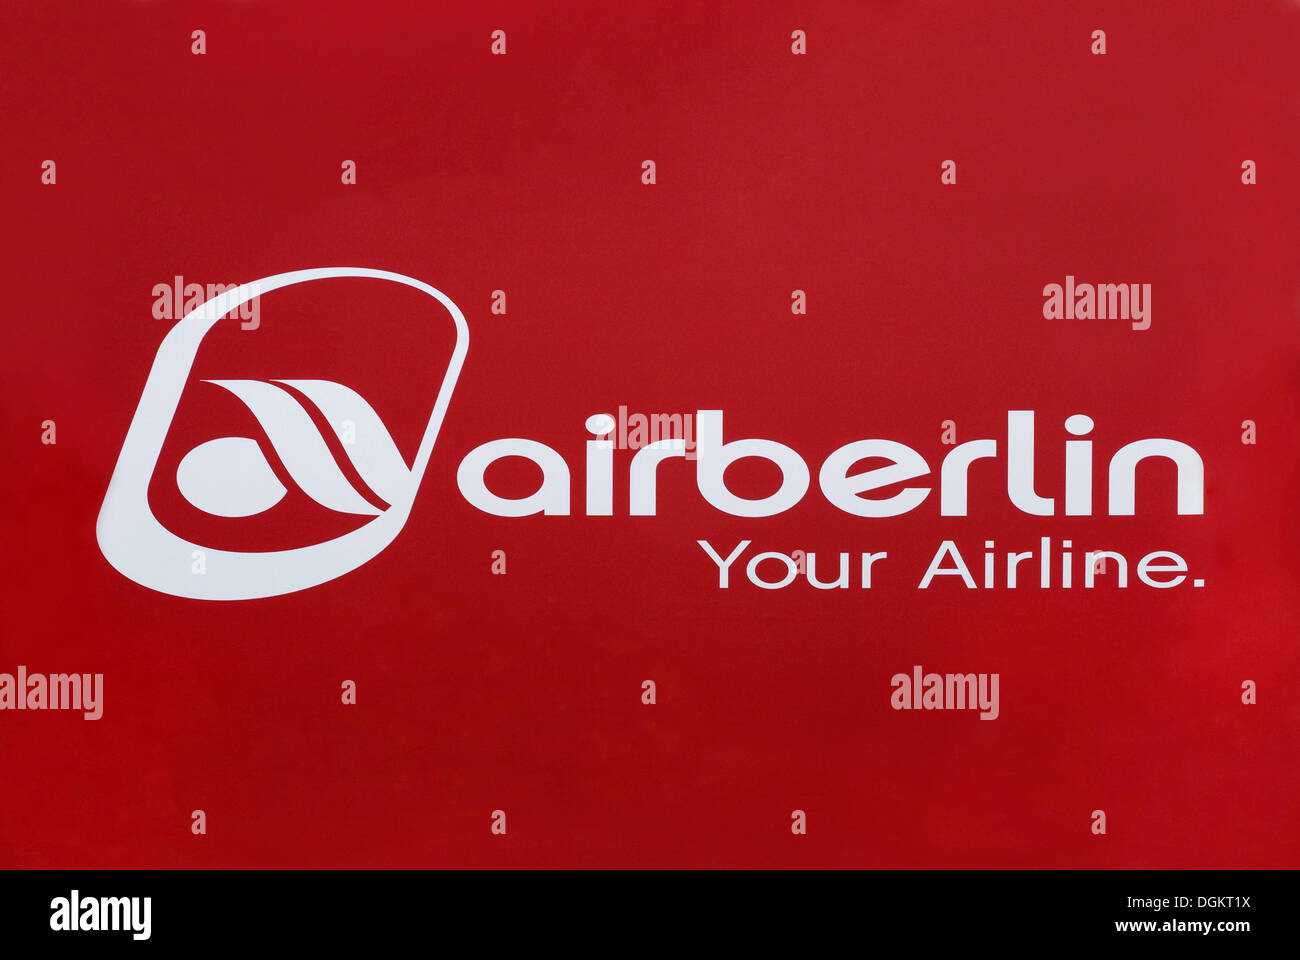 Logo, Airberlin Your Airline, German airline company - Stock Image